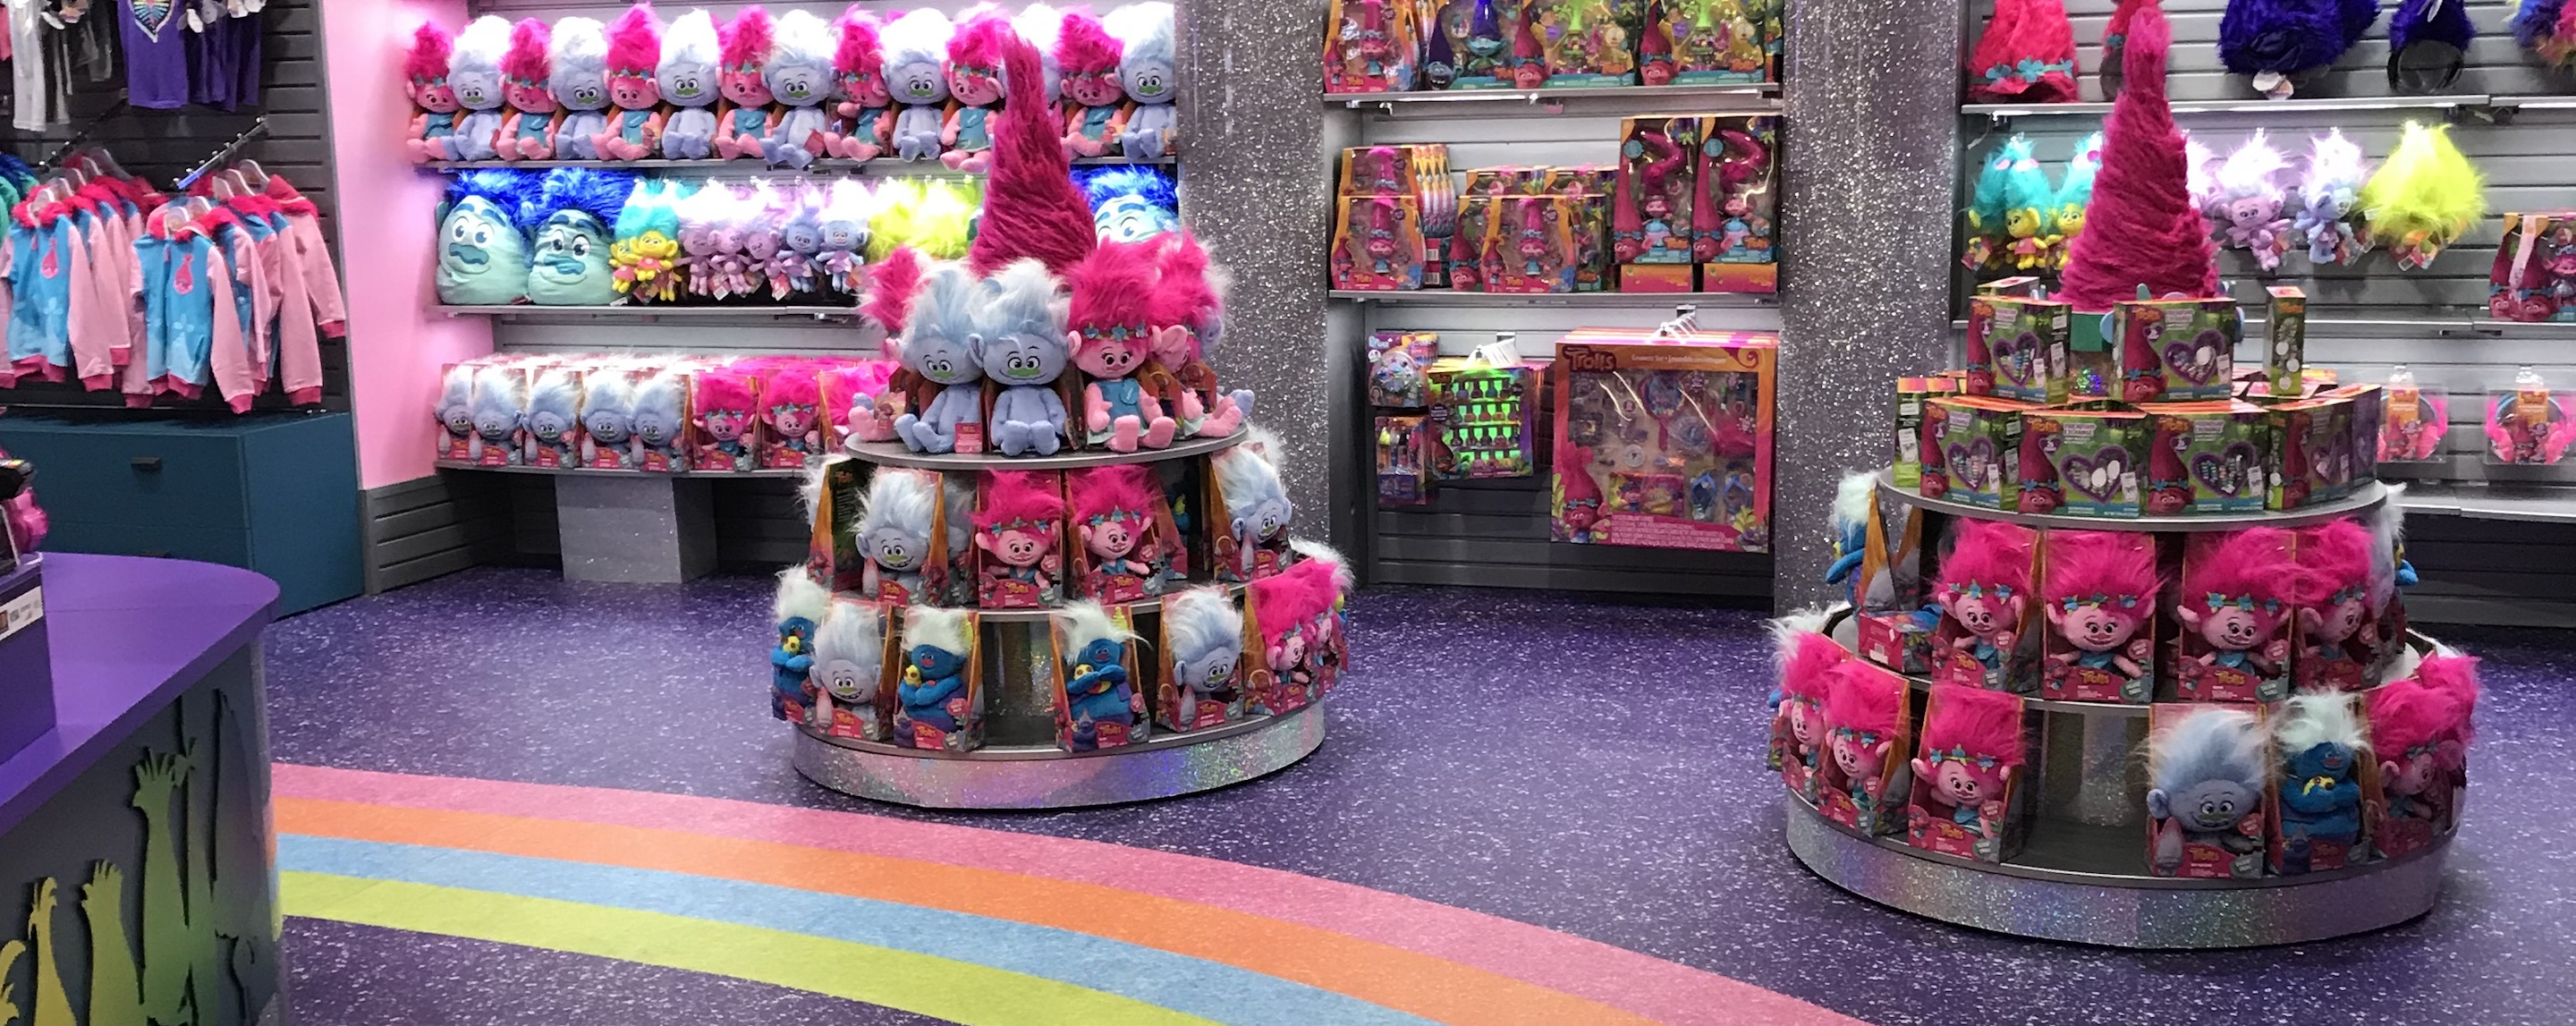 Gift shop and cafe at The Trolls Experience